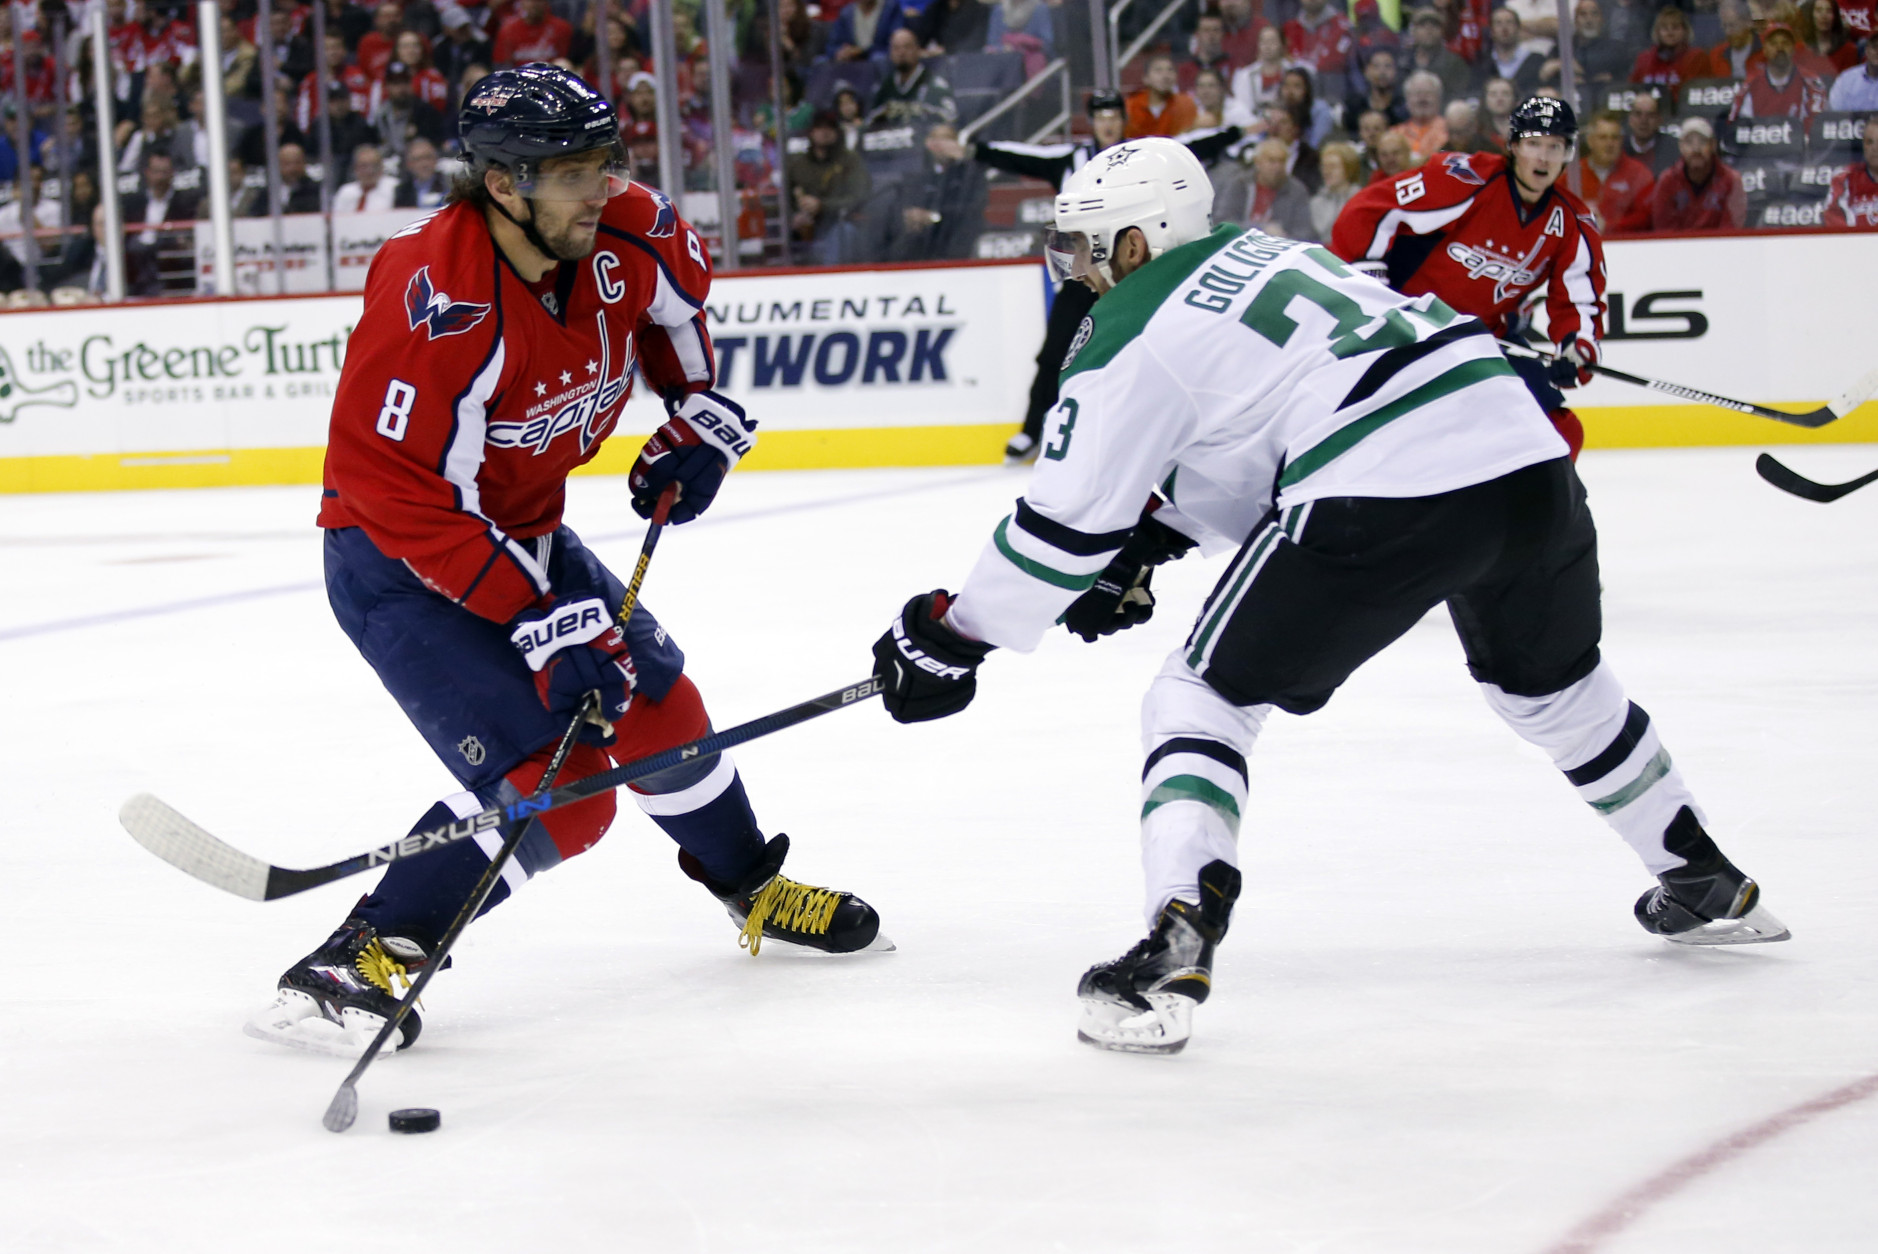 Washington Capitals left wing Alex Ovechkin (8), from Russia, has his shot blocked Dallas Stars defenseman Alex Goligoski (33) during the first period of an NHL hockey game, Thursday, Nov. 19, 2015, in Washington. (AP Photo/Alex Brandon)